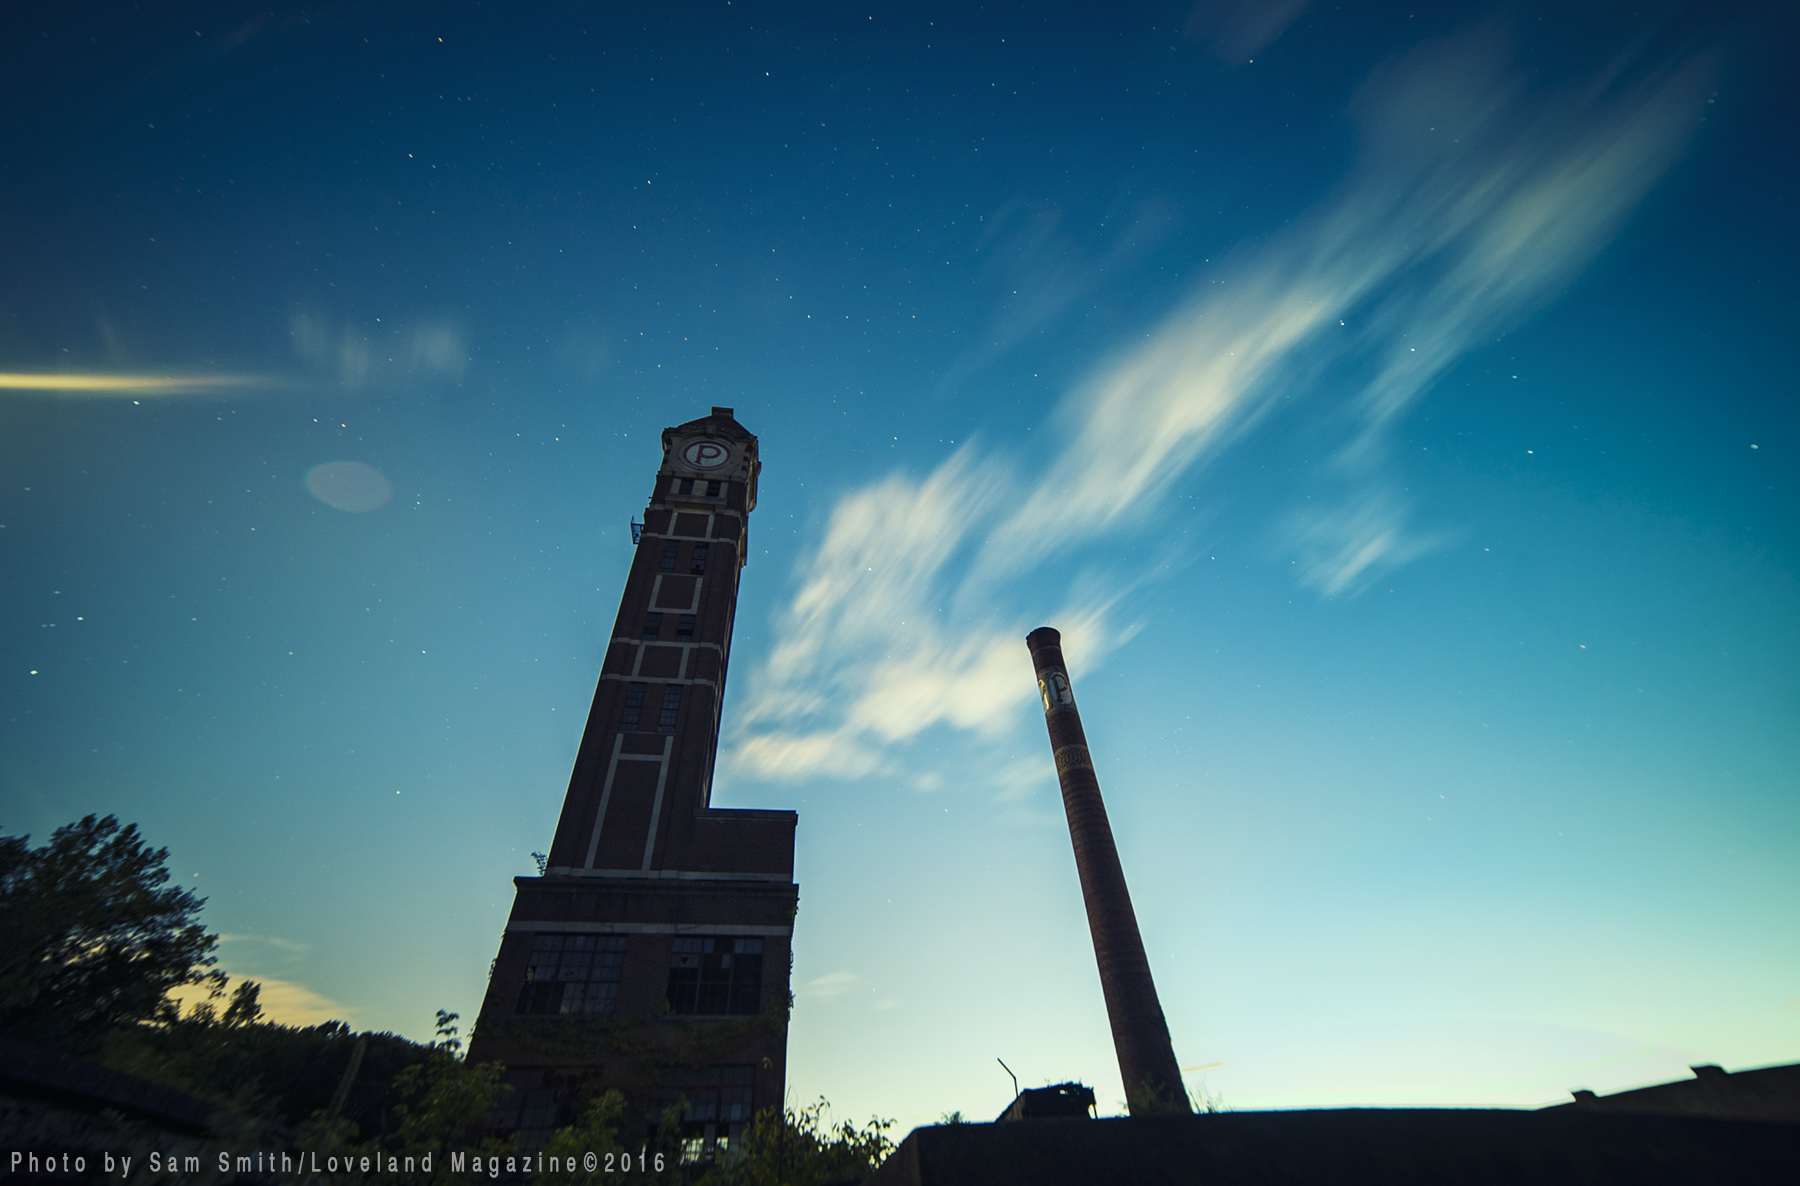 photo essay by sam smith bittersweet farewell to powder factory scifi spire